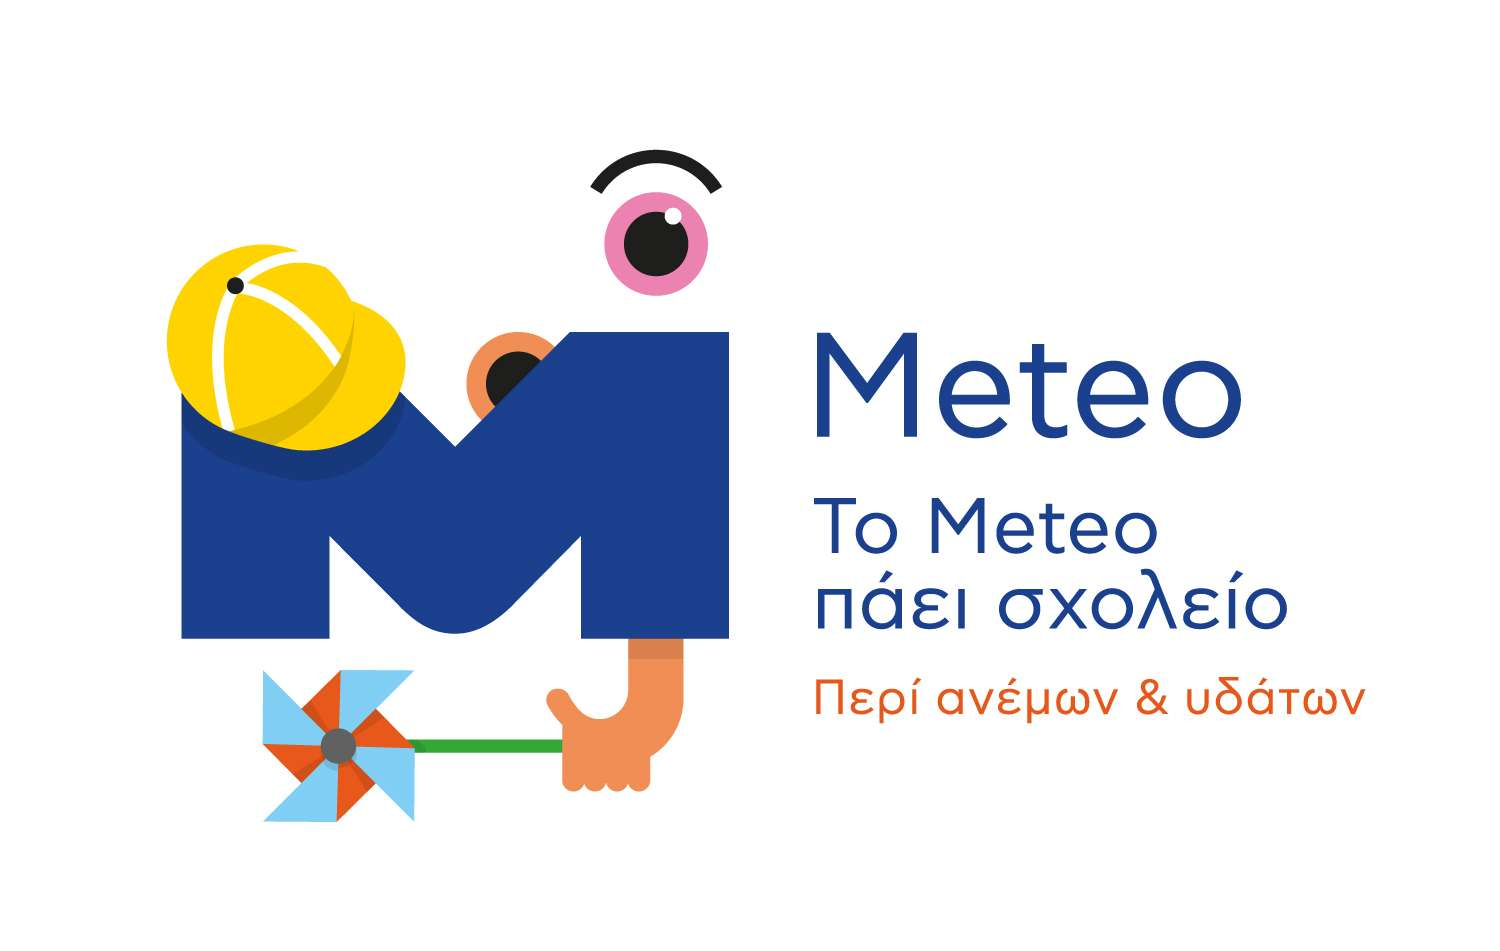 TO-METEO-PAEI-SXOLEIO_LOGO-1_FINAL-SCREEN